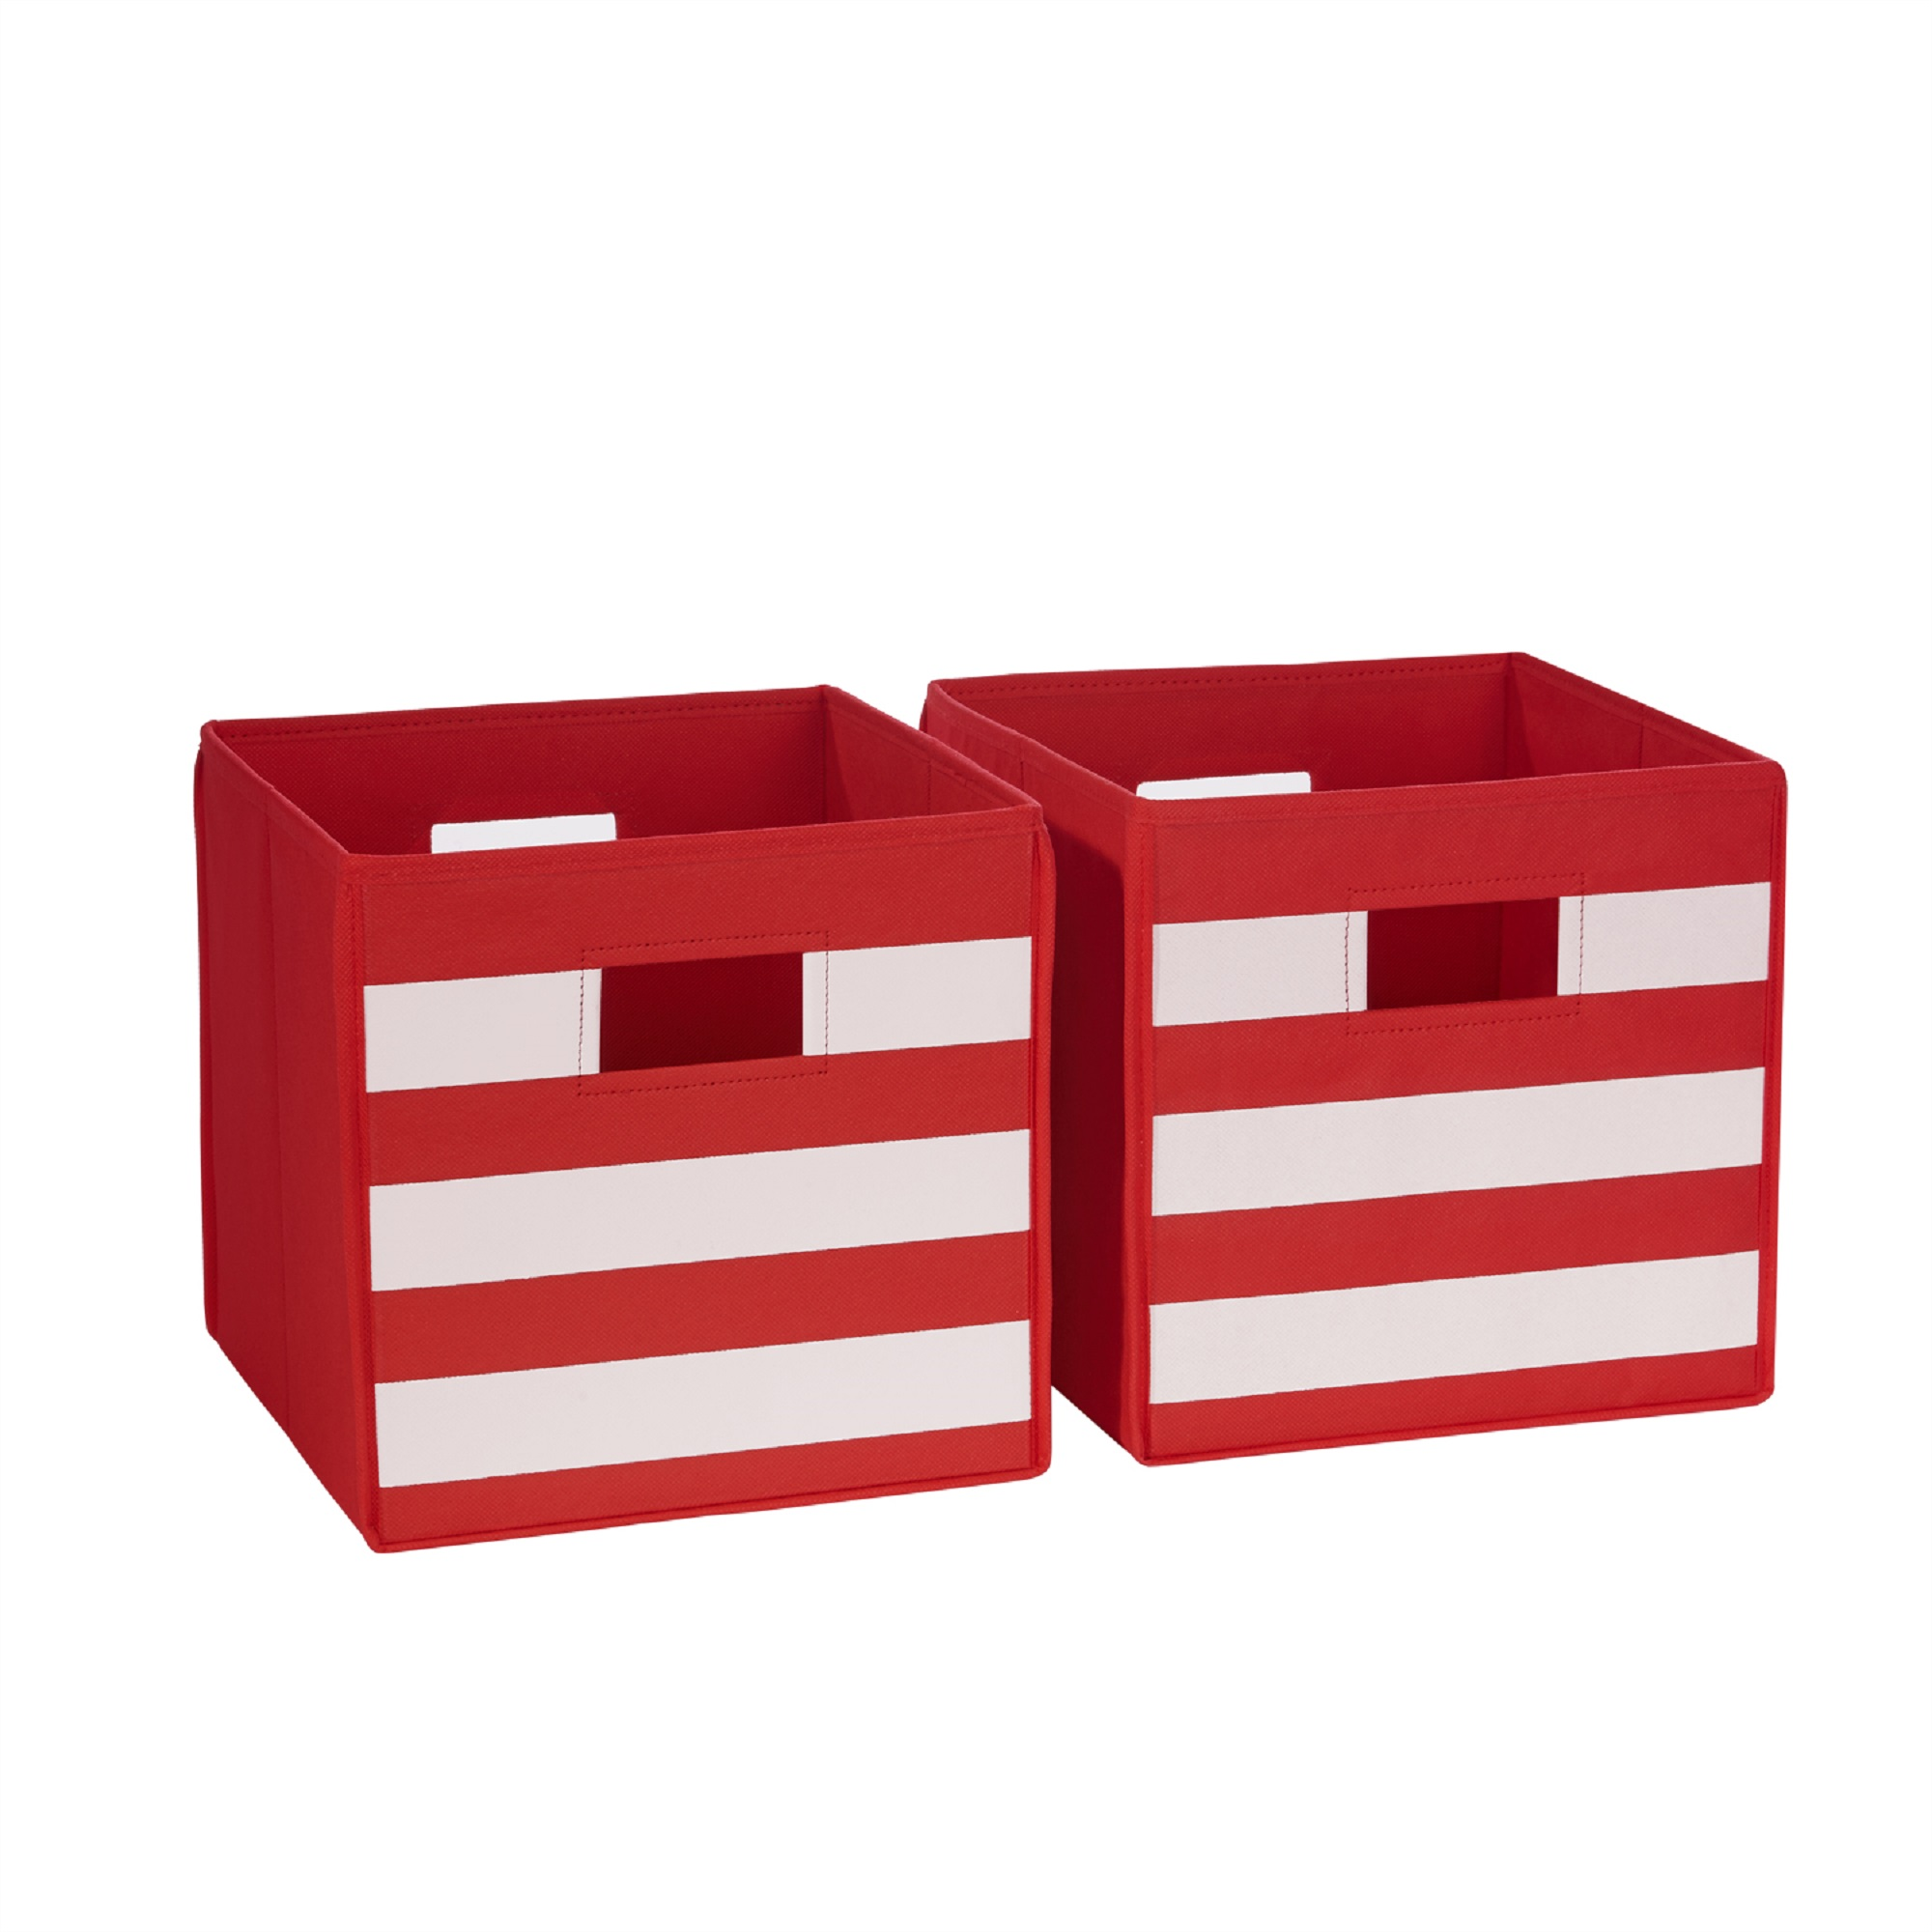 Foldable Cloth Storage Cube Basket Bins Organizer Containers Drawers Adorn Home Essentials DUAL HANDLE by ADORN Brown 3 Pack